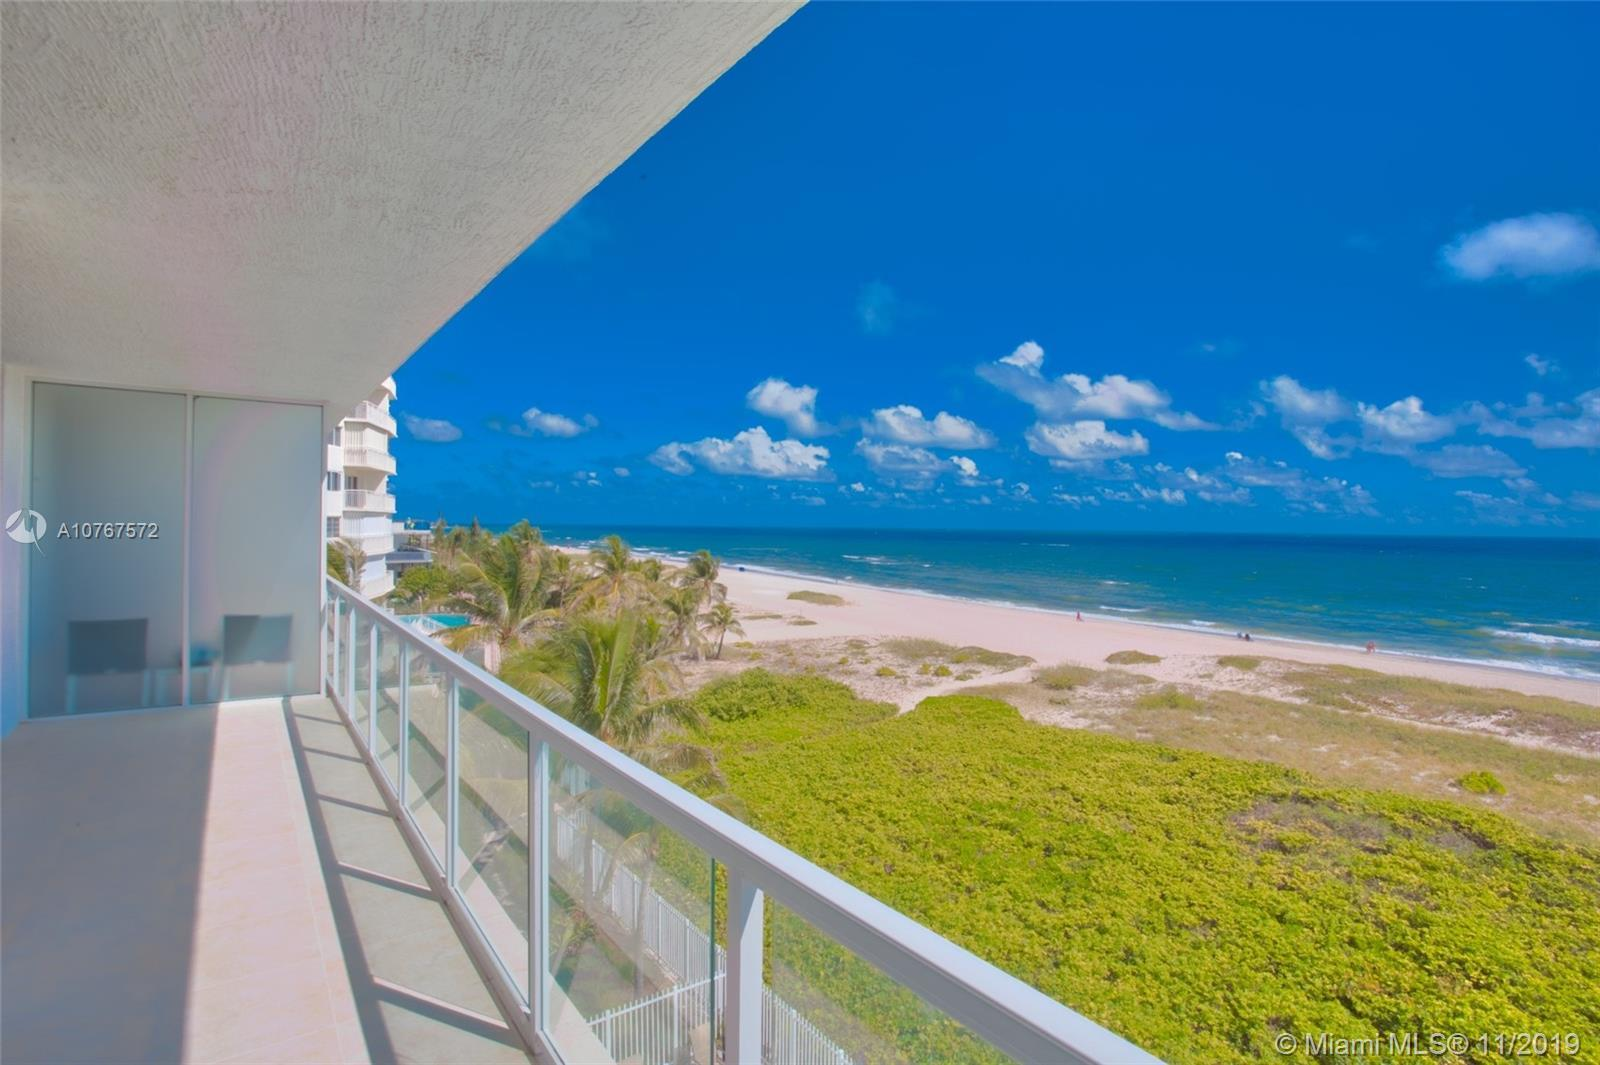 2 bedroom + den. this unit offers ceiling to floor windows with direct views of the ocean and intra-